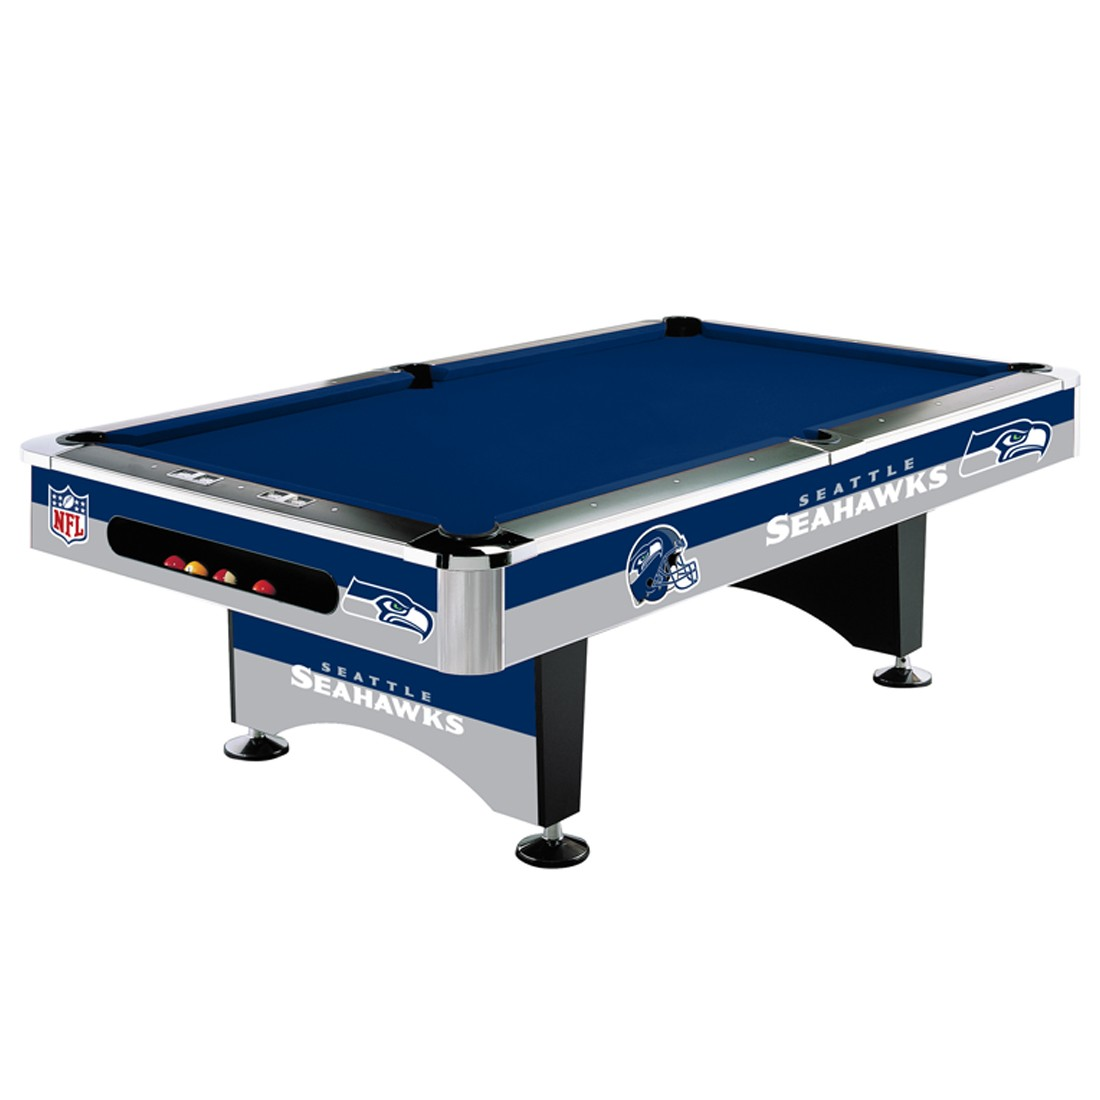 SEATTLE SEAHAWKS 8-FT. POOL TABLE